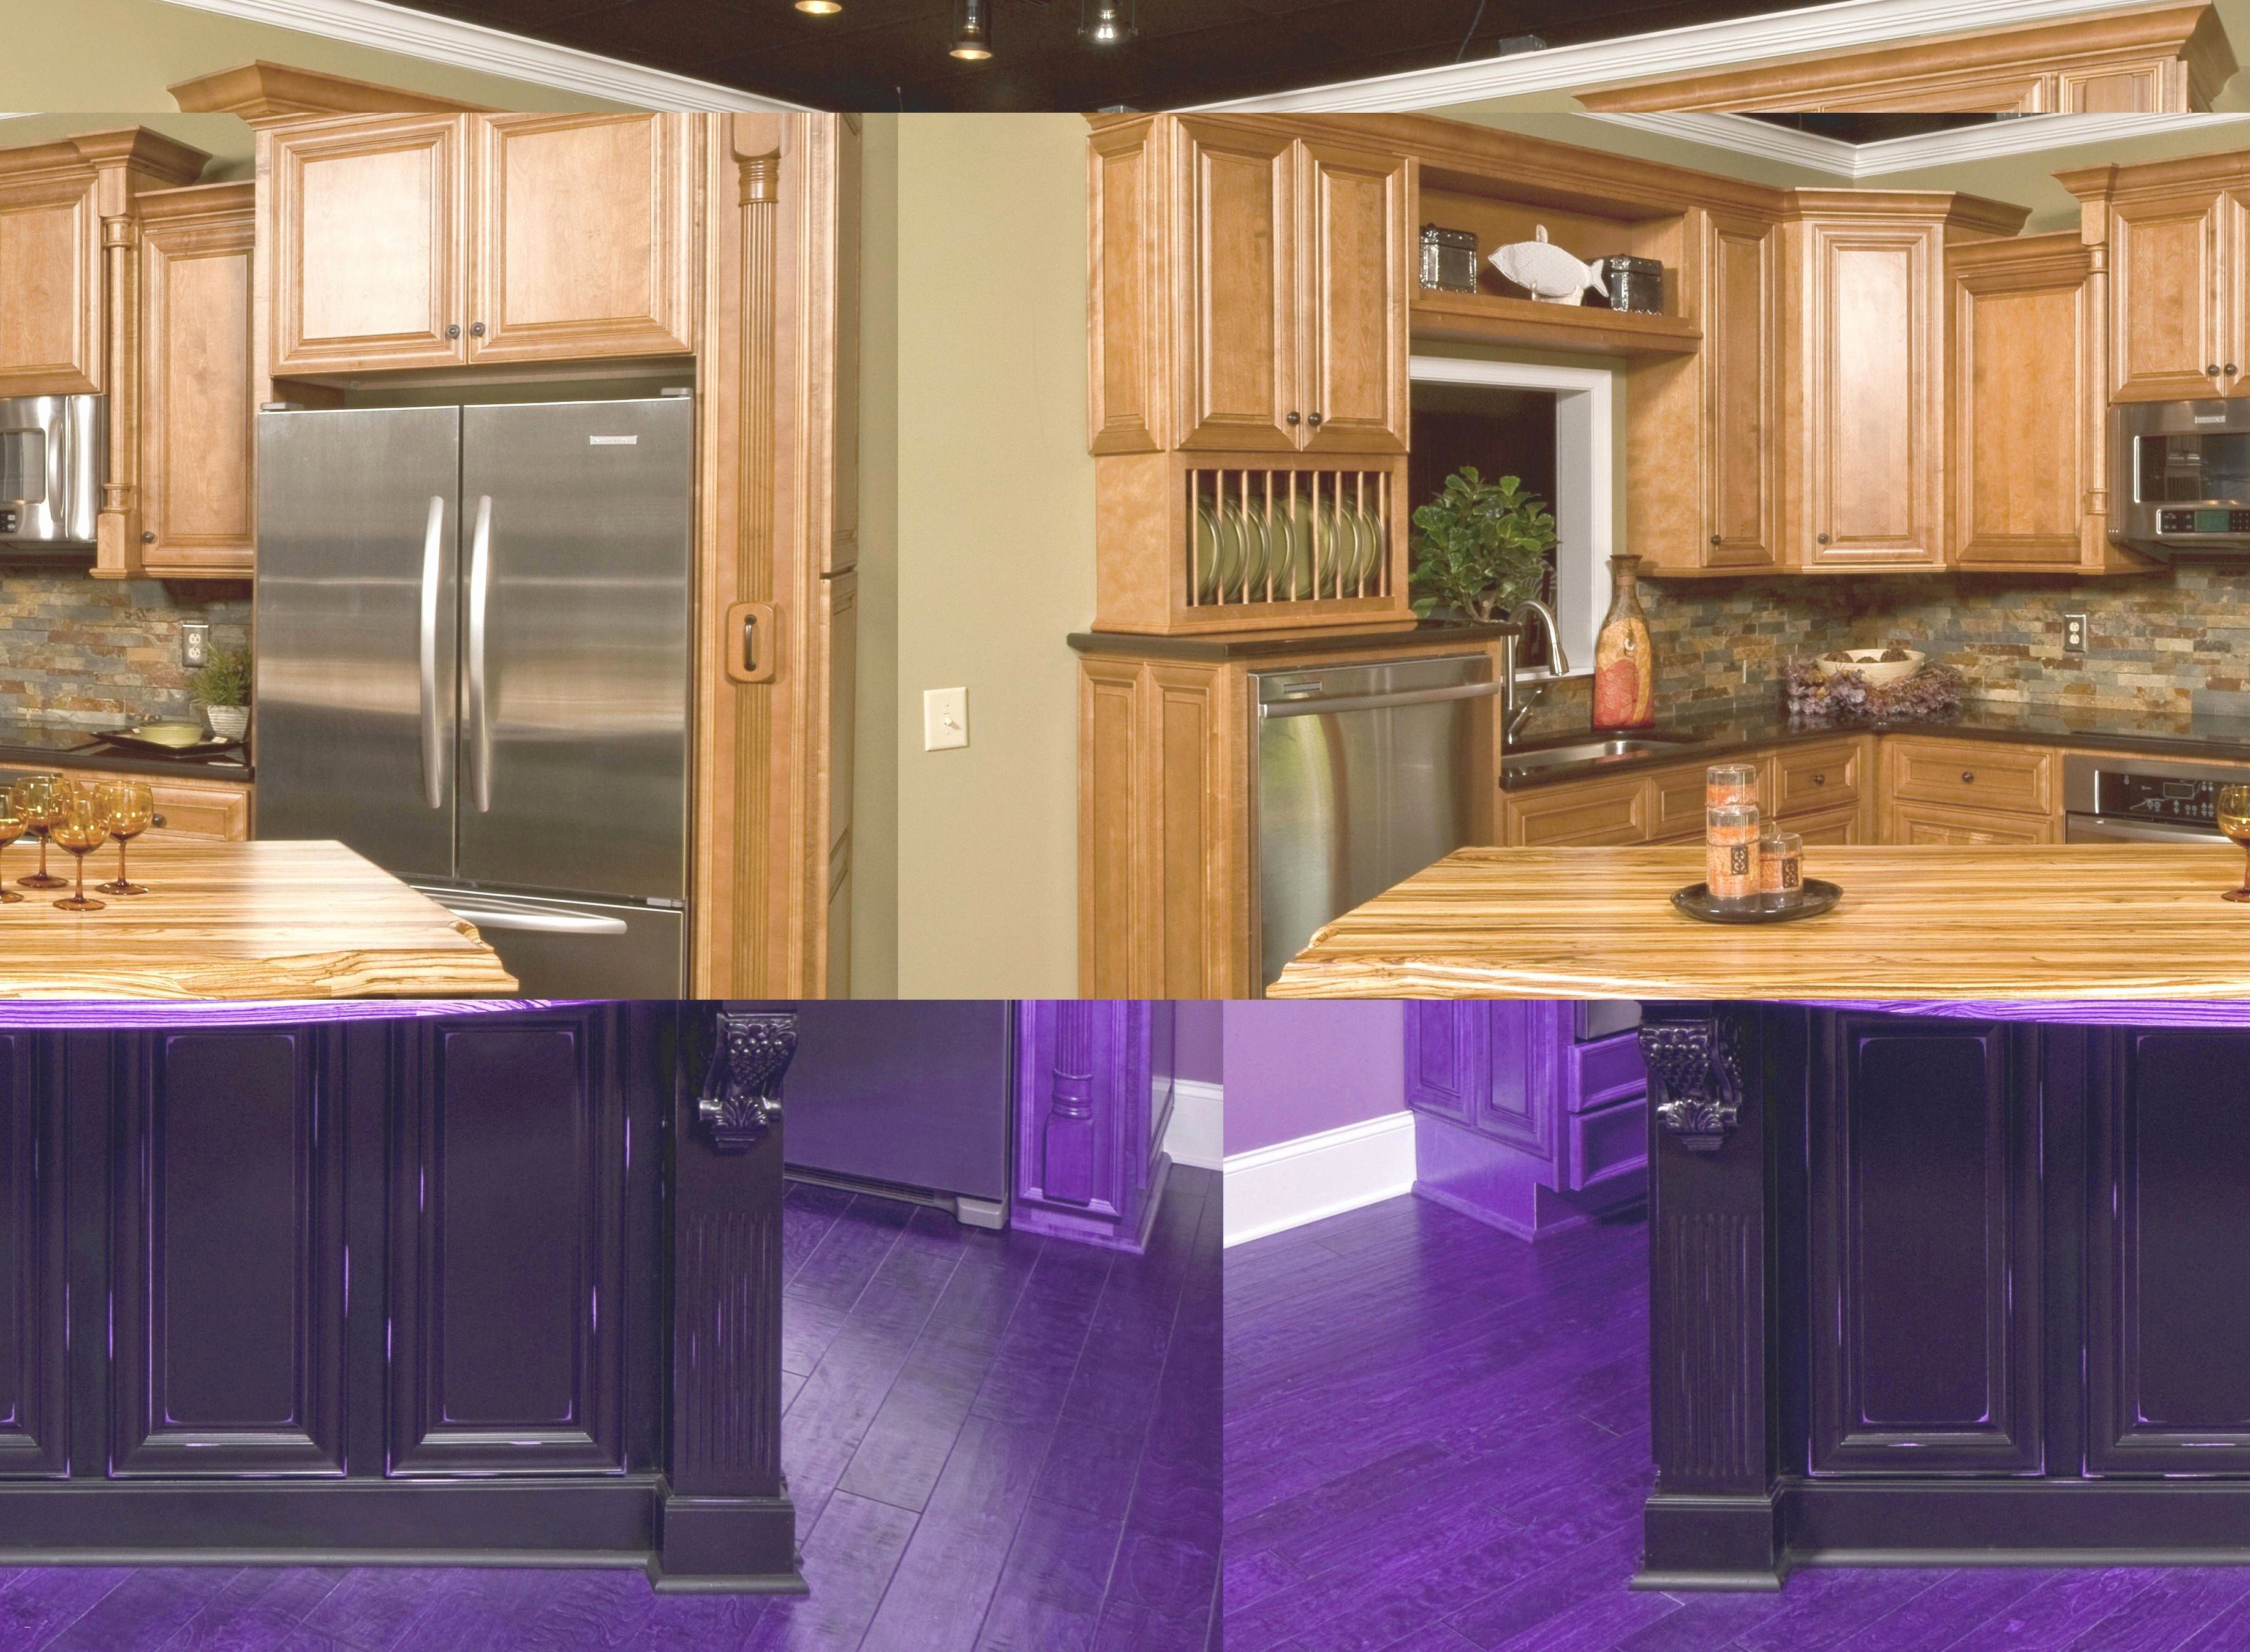 gray hardwood floors in kitchen of elegant 29 gray and white kitchens photographs for kitchen with wood floors and white cabinets lovely assembled kitchen cabinets the most wainscoting cabinets 0d